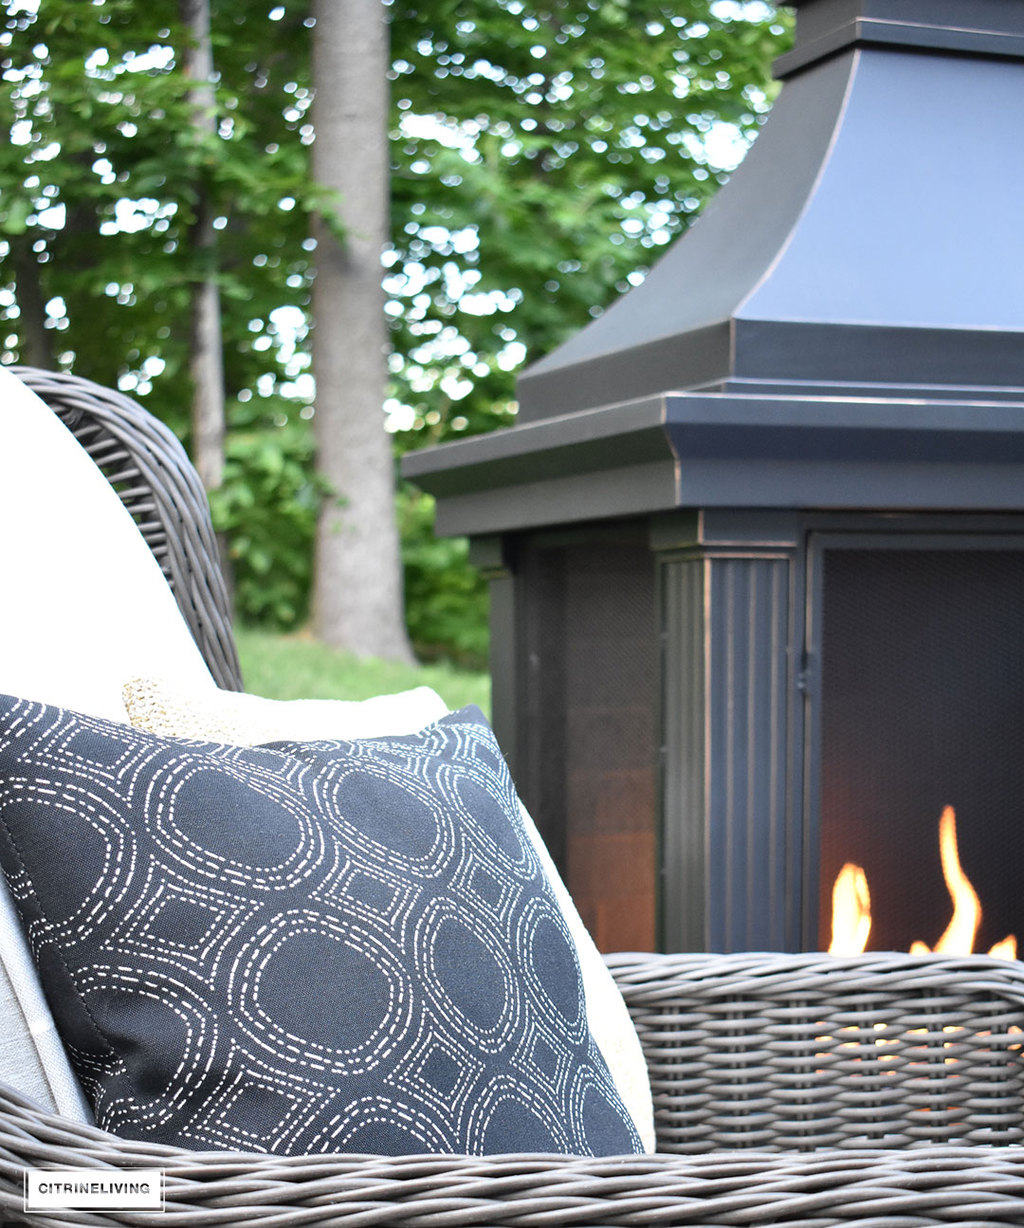 Comfy furniture and layers with pillows and blankets bring the indoors outside by this outdoor fireplace.